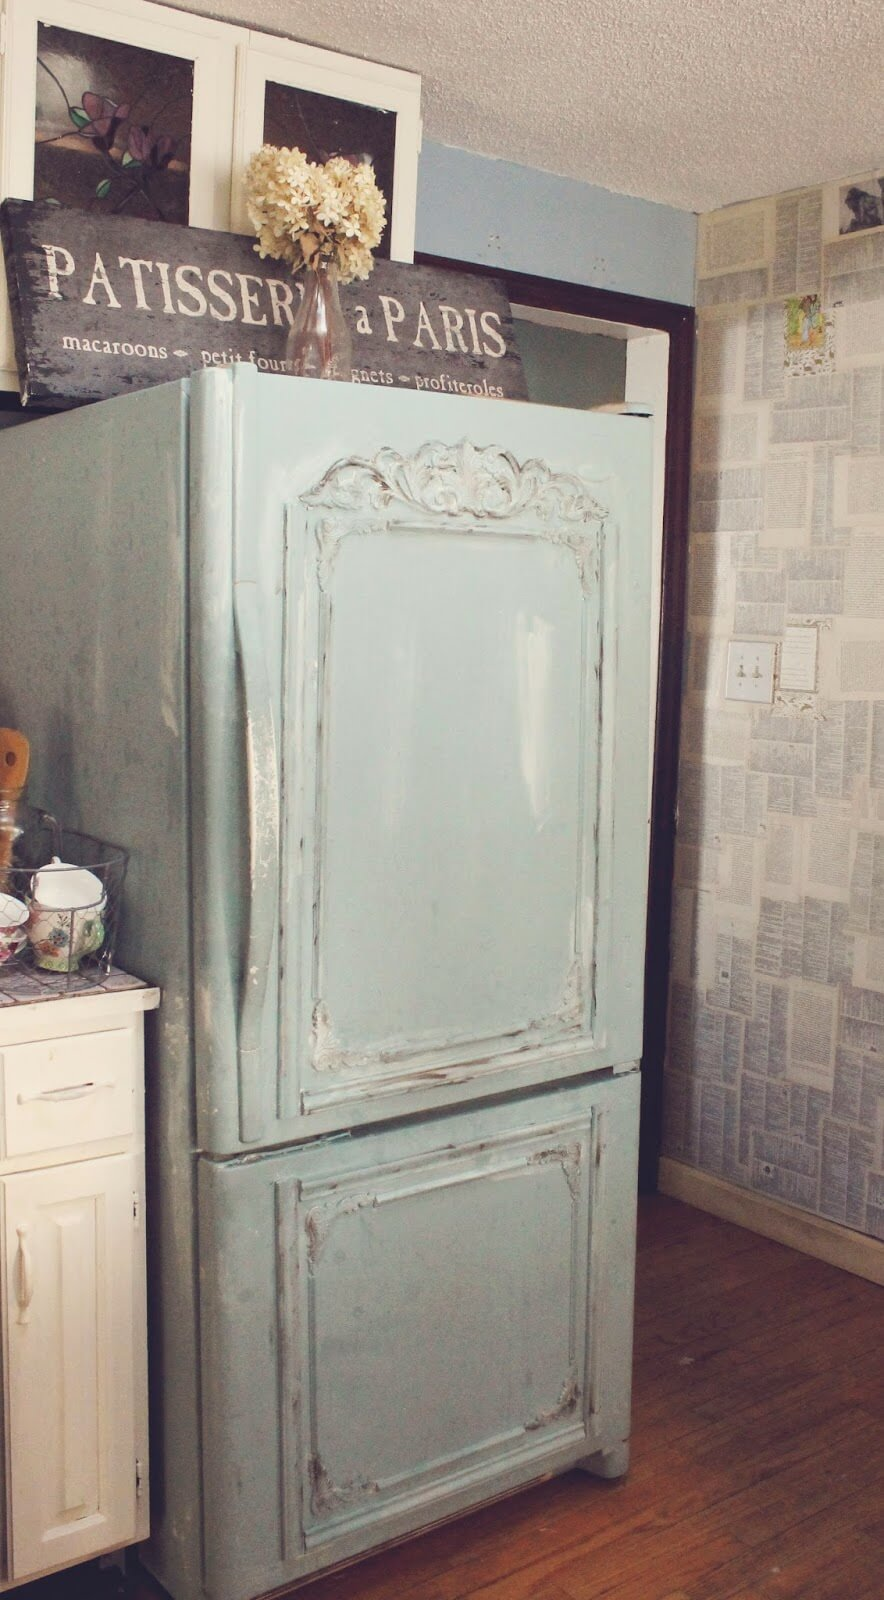 Faux Antiqued Refrigerator and Newsy Wallpaper